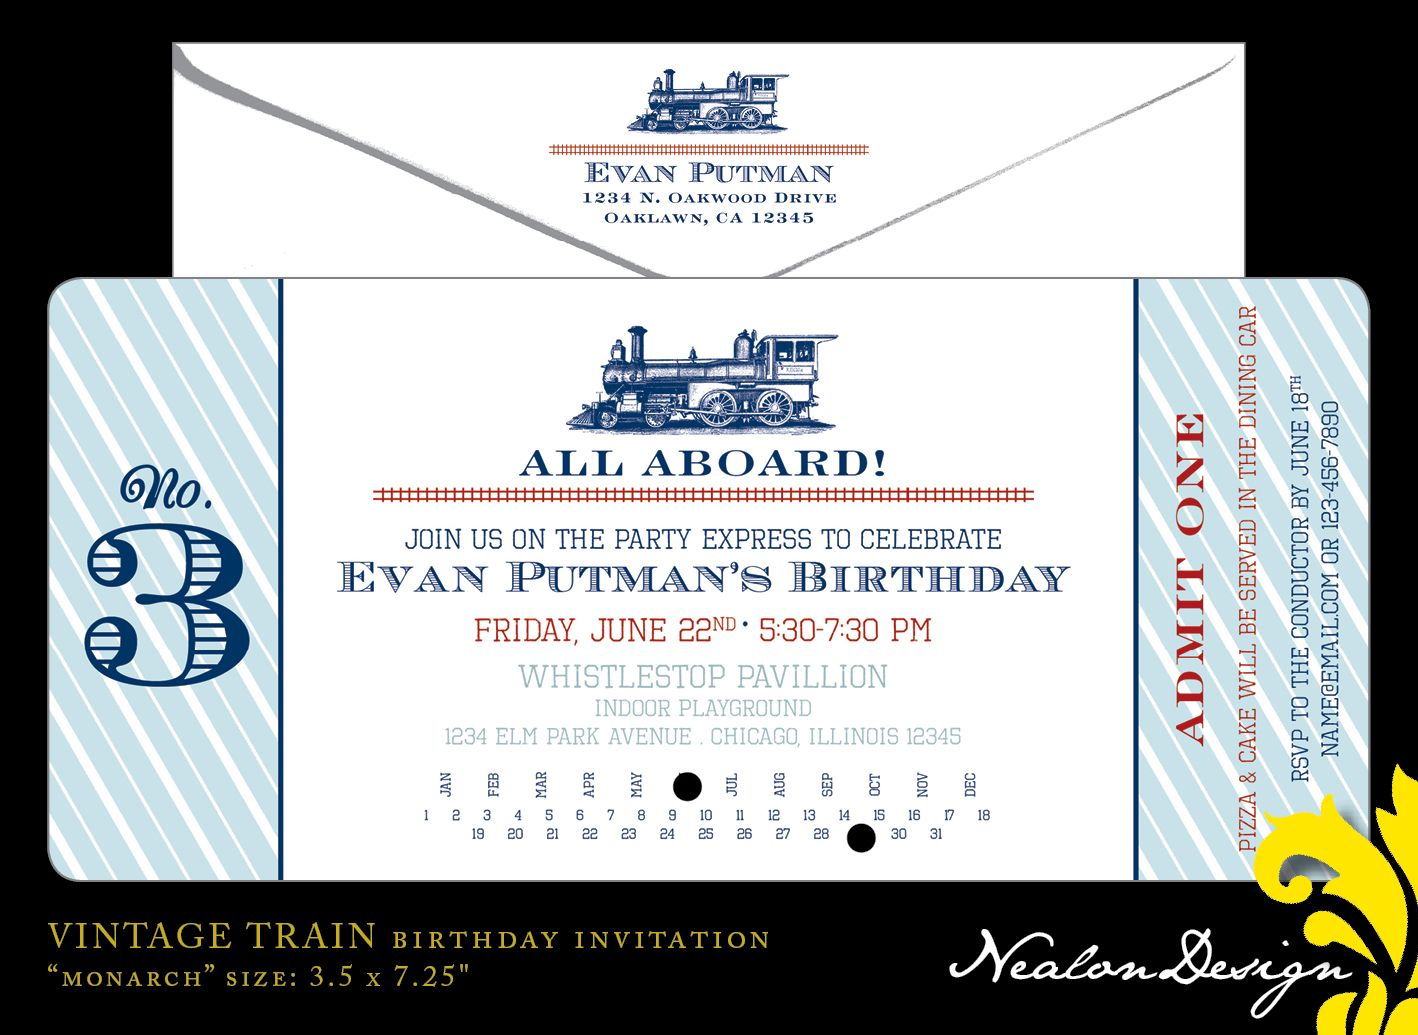 Invitations With Train Themes Nealon Design Vintage TRAIN  C3dcaa5e5e47d1cf613ea6c37af8c450 575827502326616236. Ticket Invitation Maker  Concert Ticket Template Free Printable